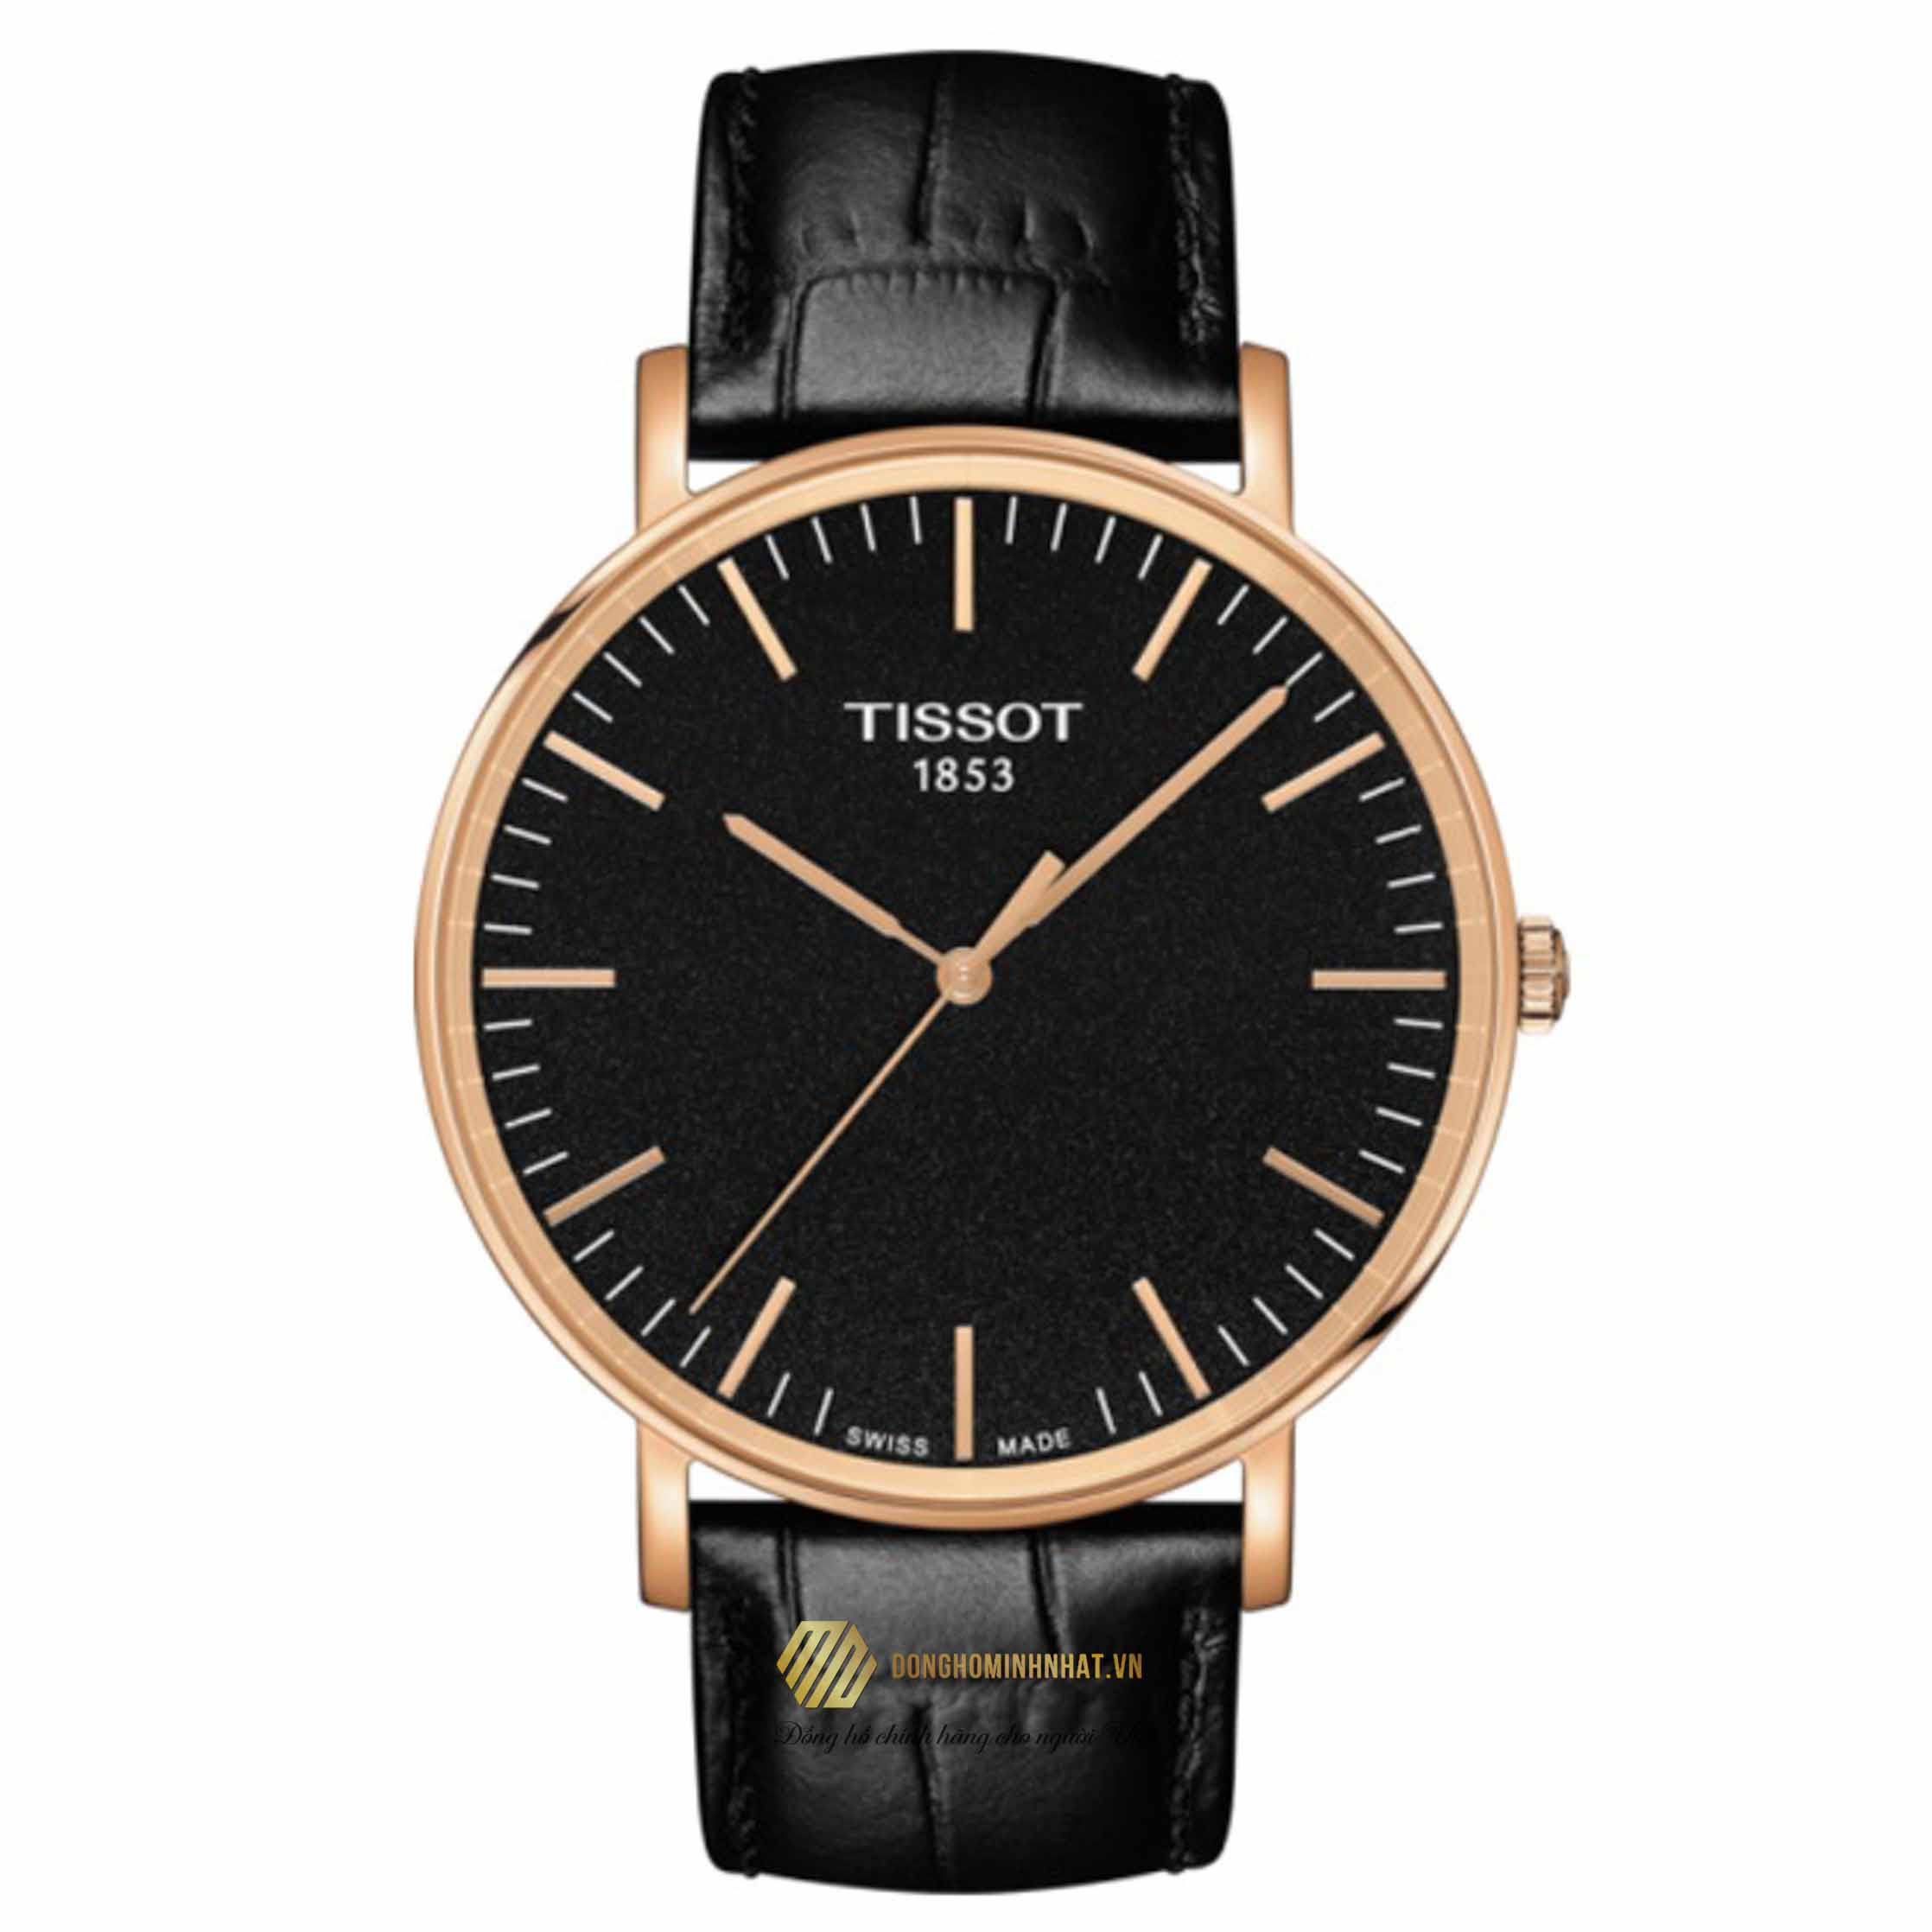 ĐỒNG HỒ TISSOT NAM EVERYTIME LARGE T109.610.36.051.00 SLIVER DAIL WATCH